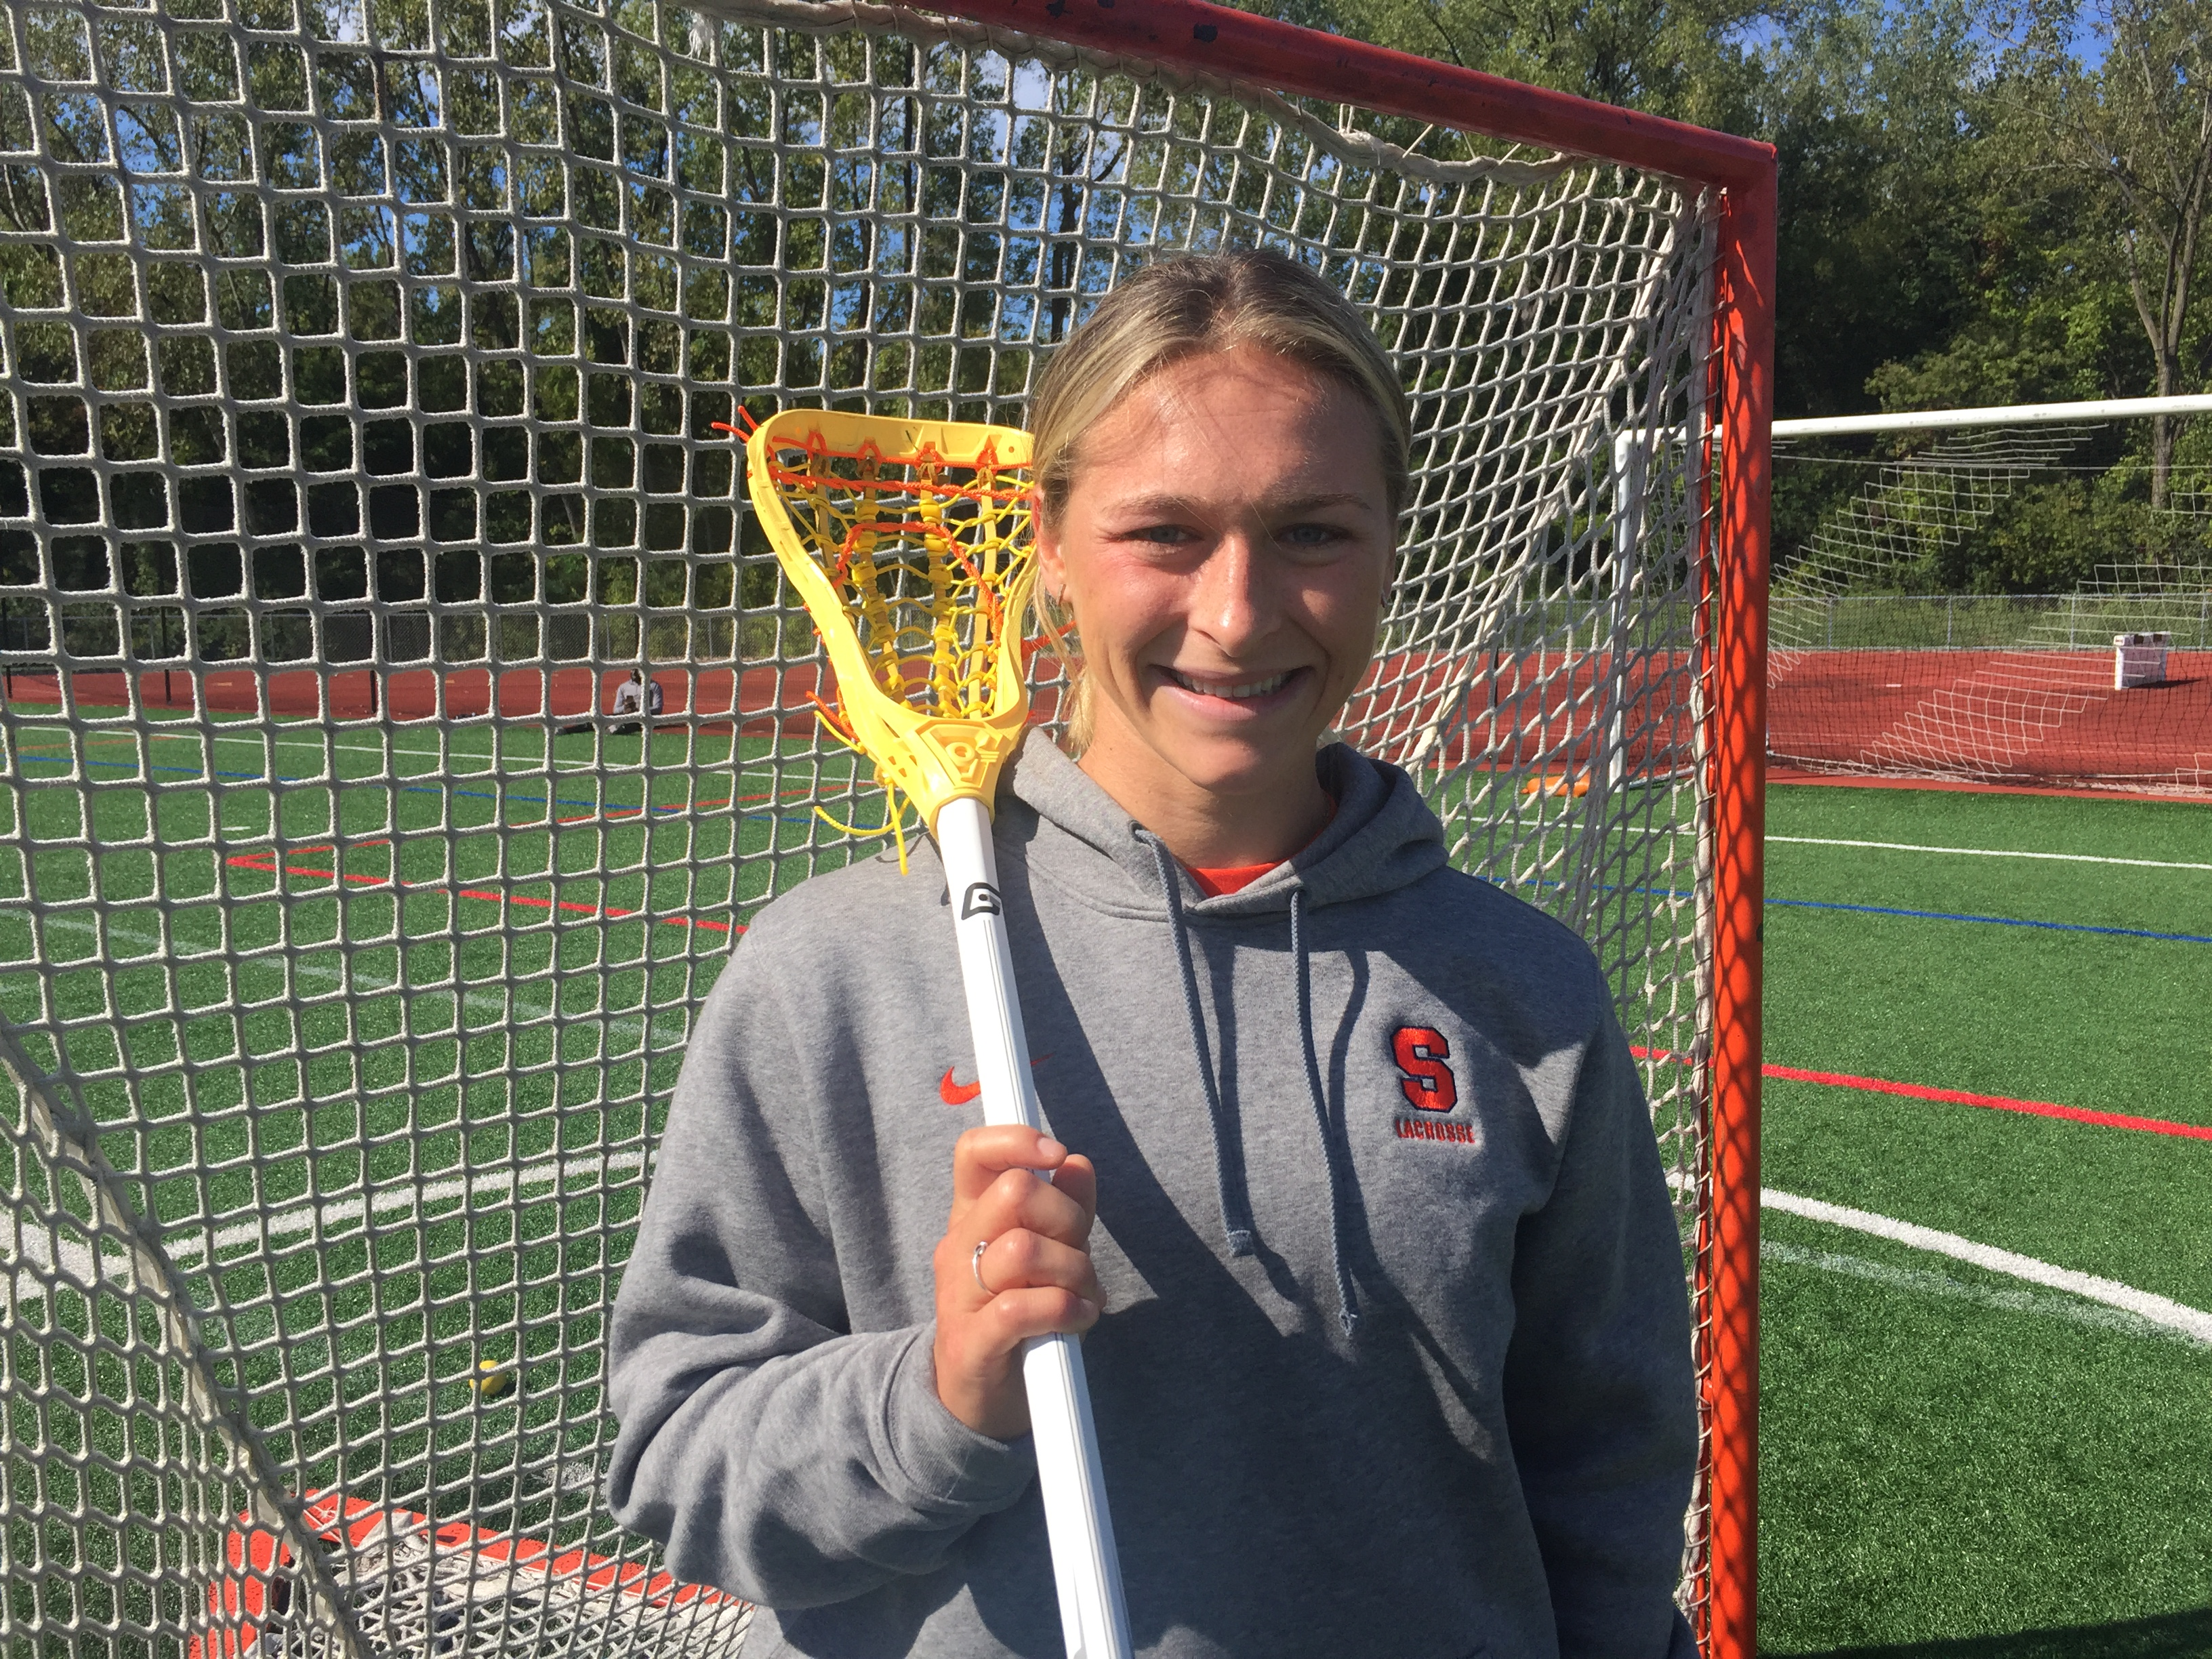 Sydney Pirreca took off for Greece and landed with Syracuse women's lacrosse